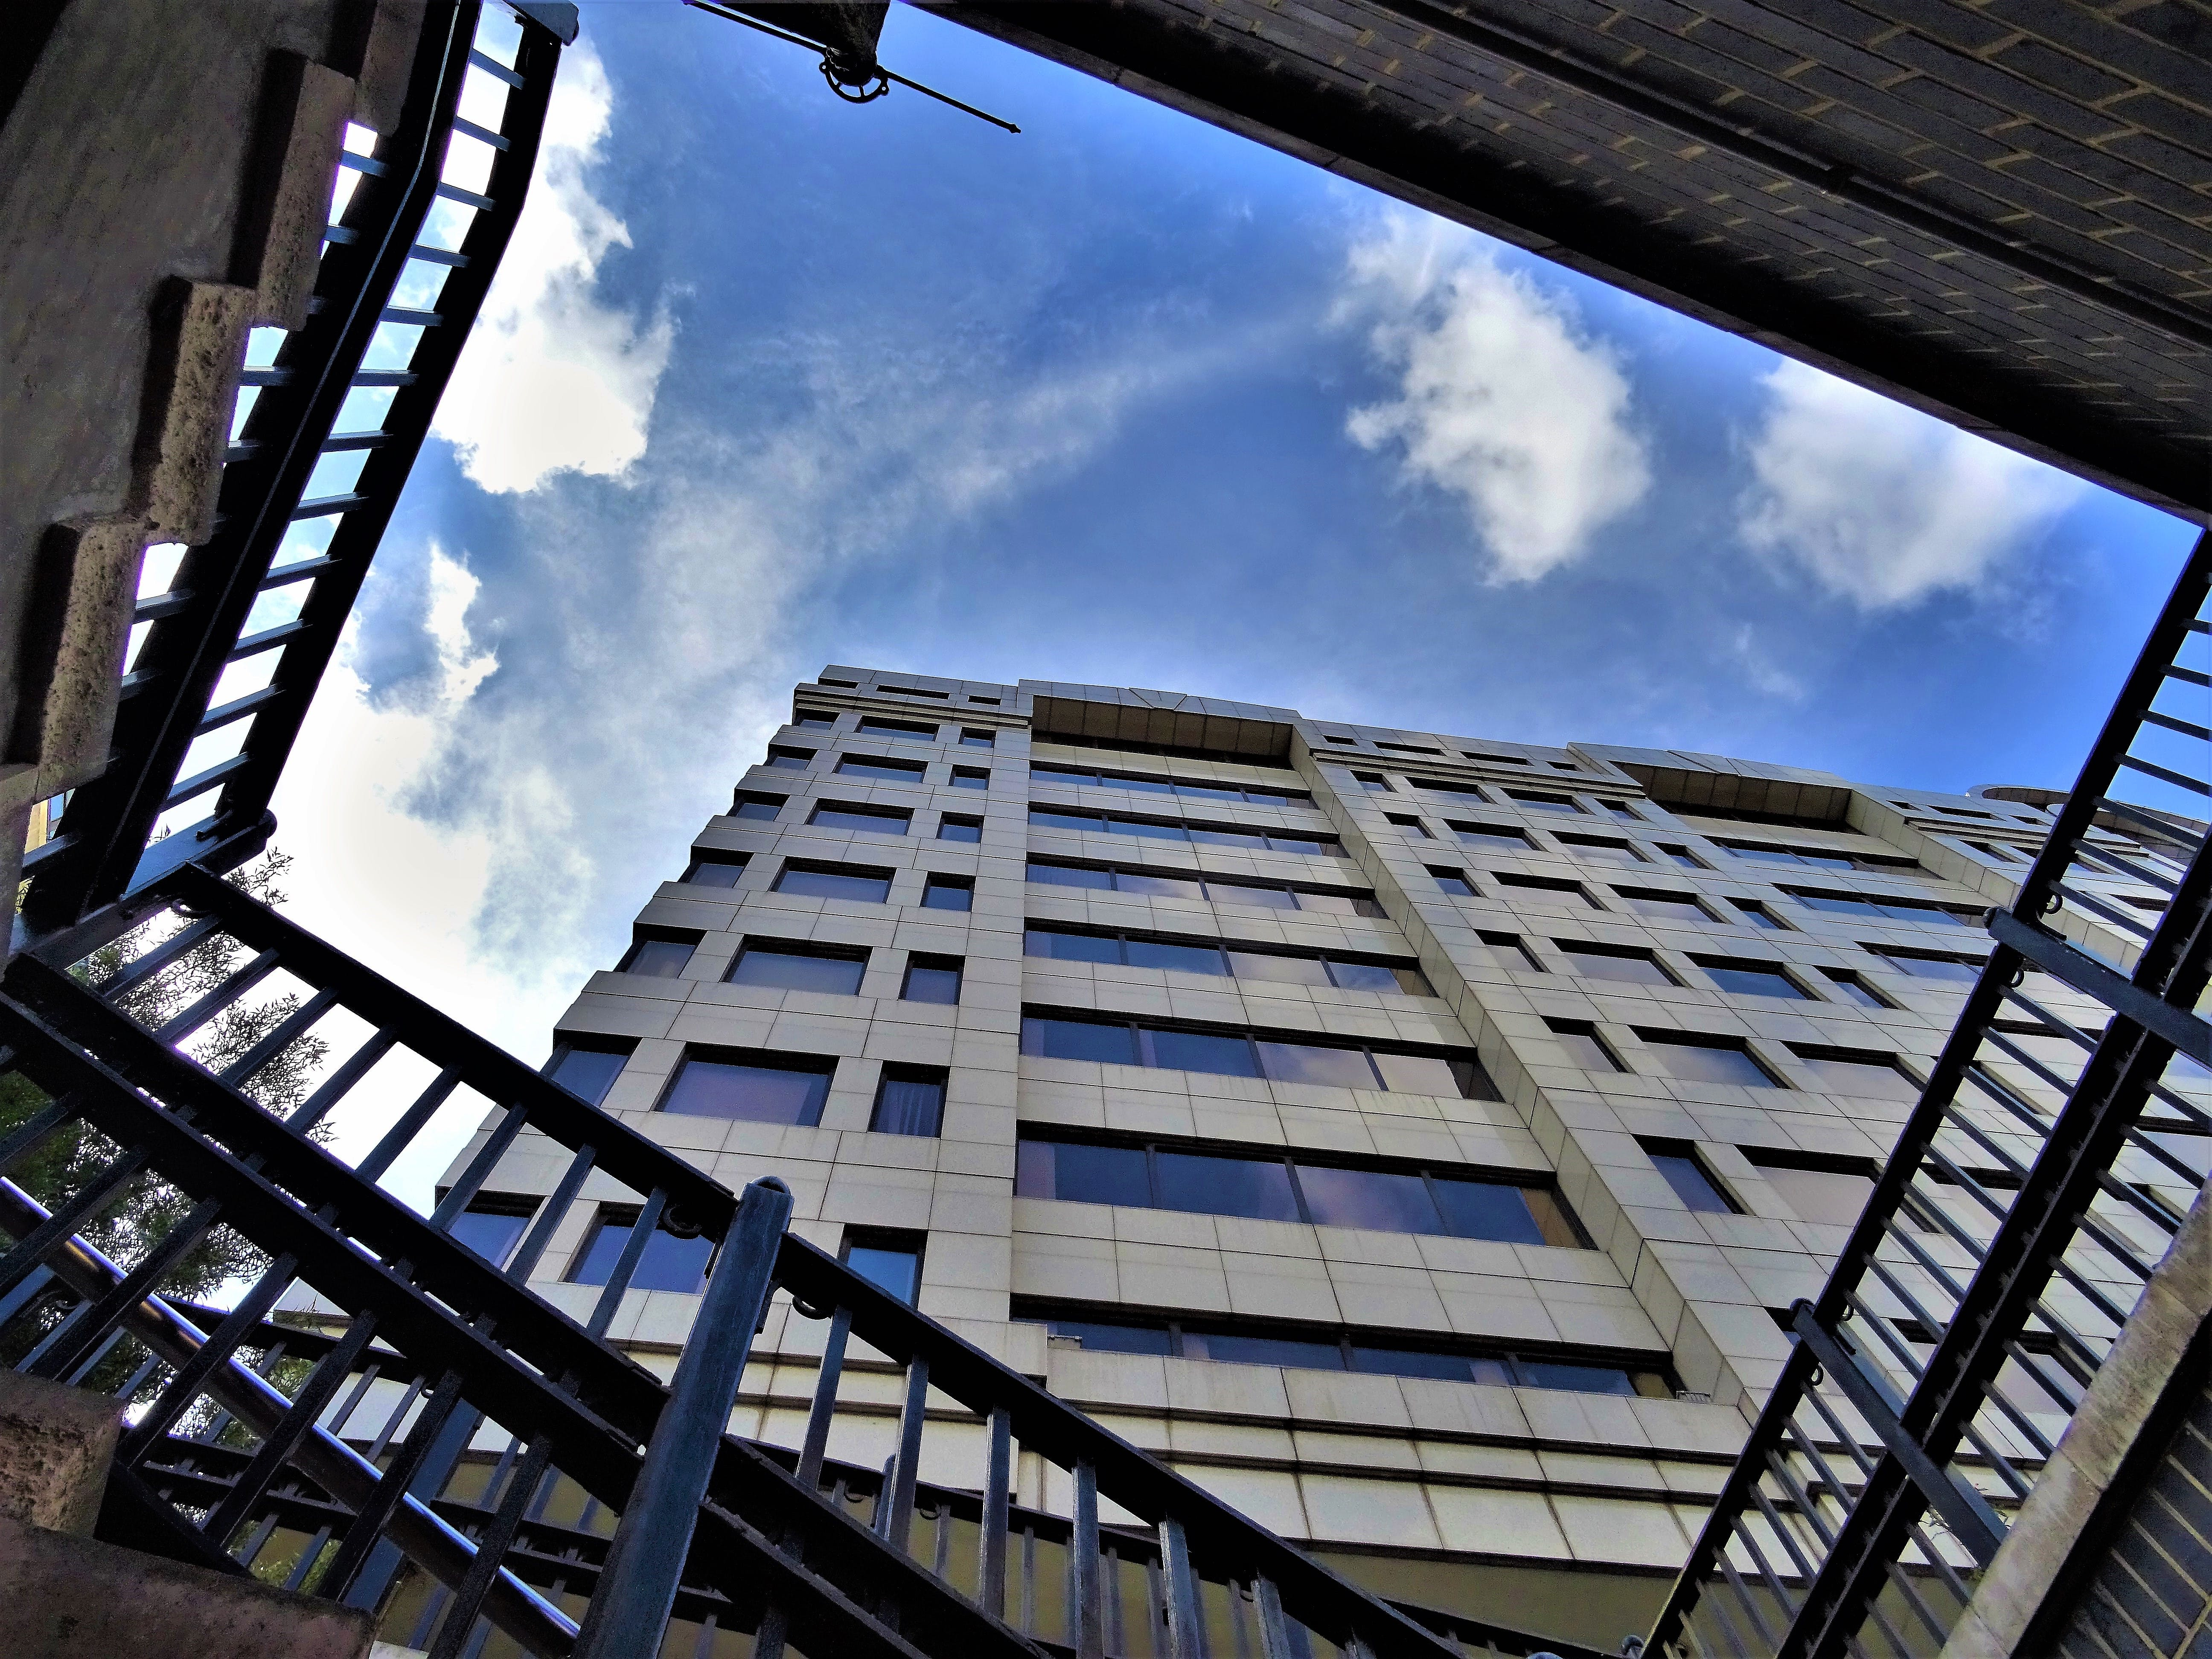 Low-angle Photography of High Rise Building Under Stratus Clouds